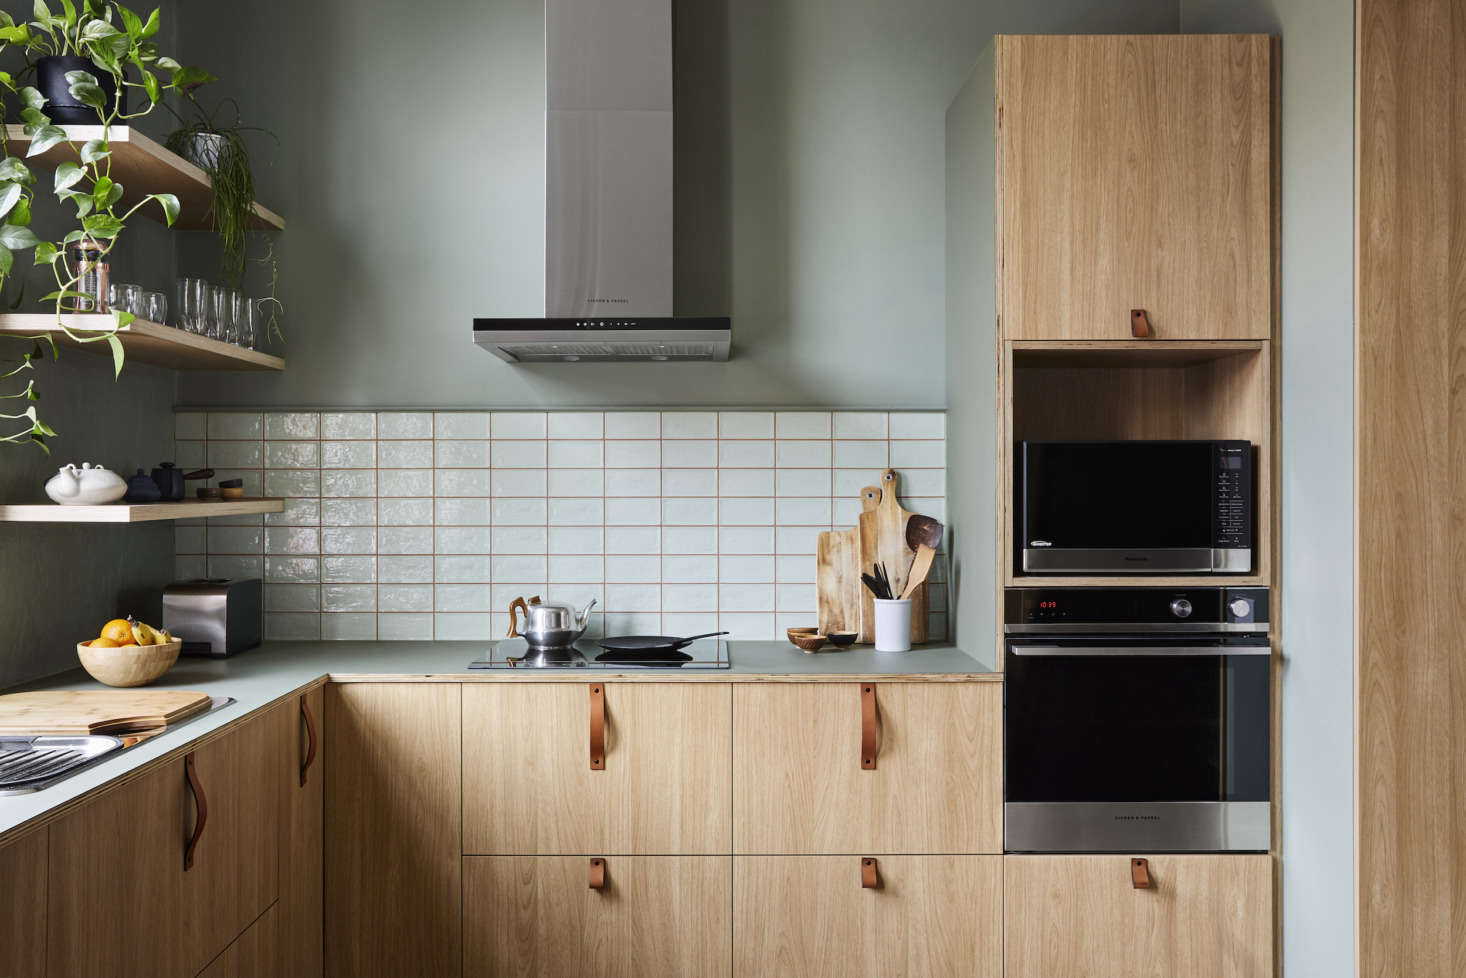 The kitchen references the outdoors with sage-green accents. On the walls here is Dollar by Australian paint company Dulux. The tiles are from the Piemonte collection (in apple) by Classic Ceramics.